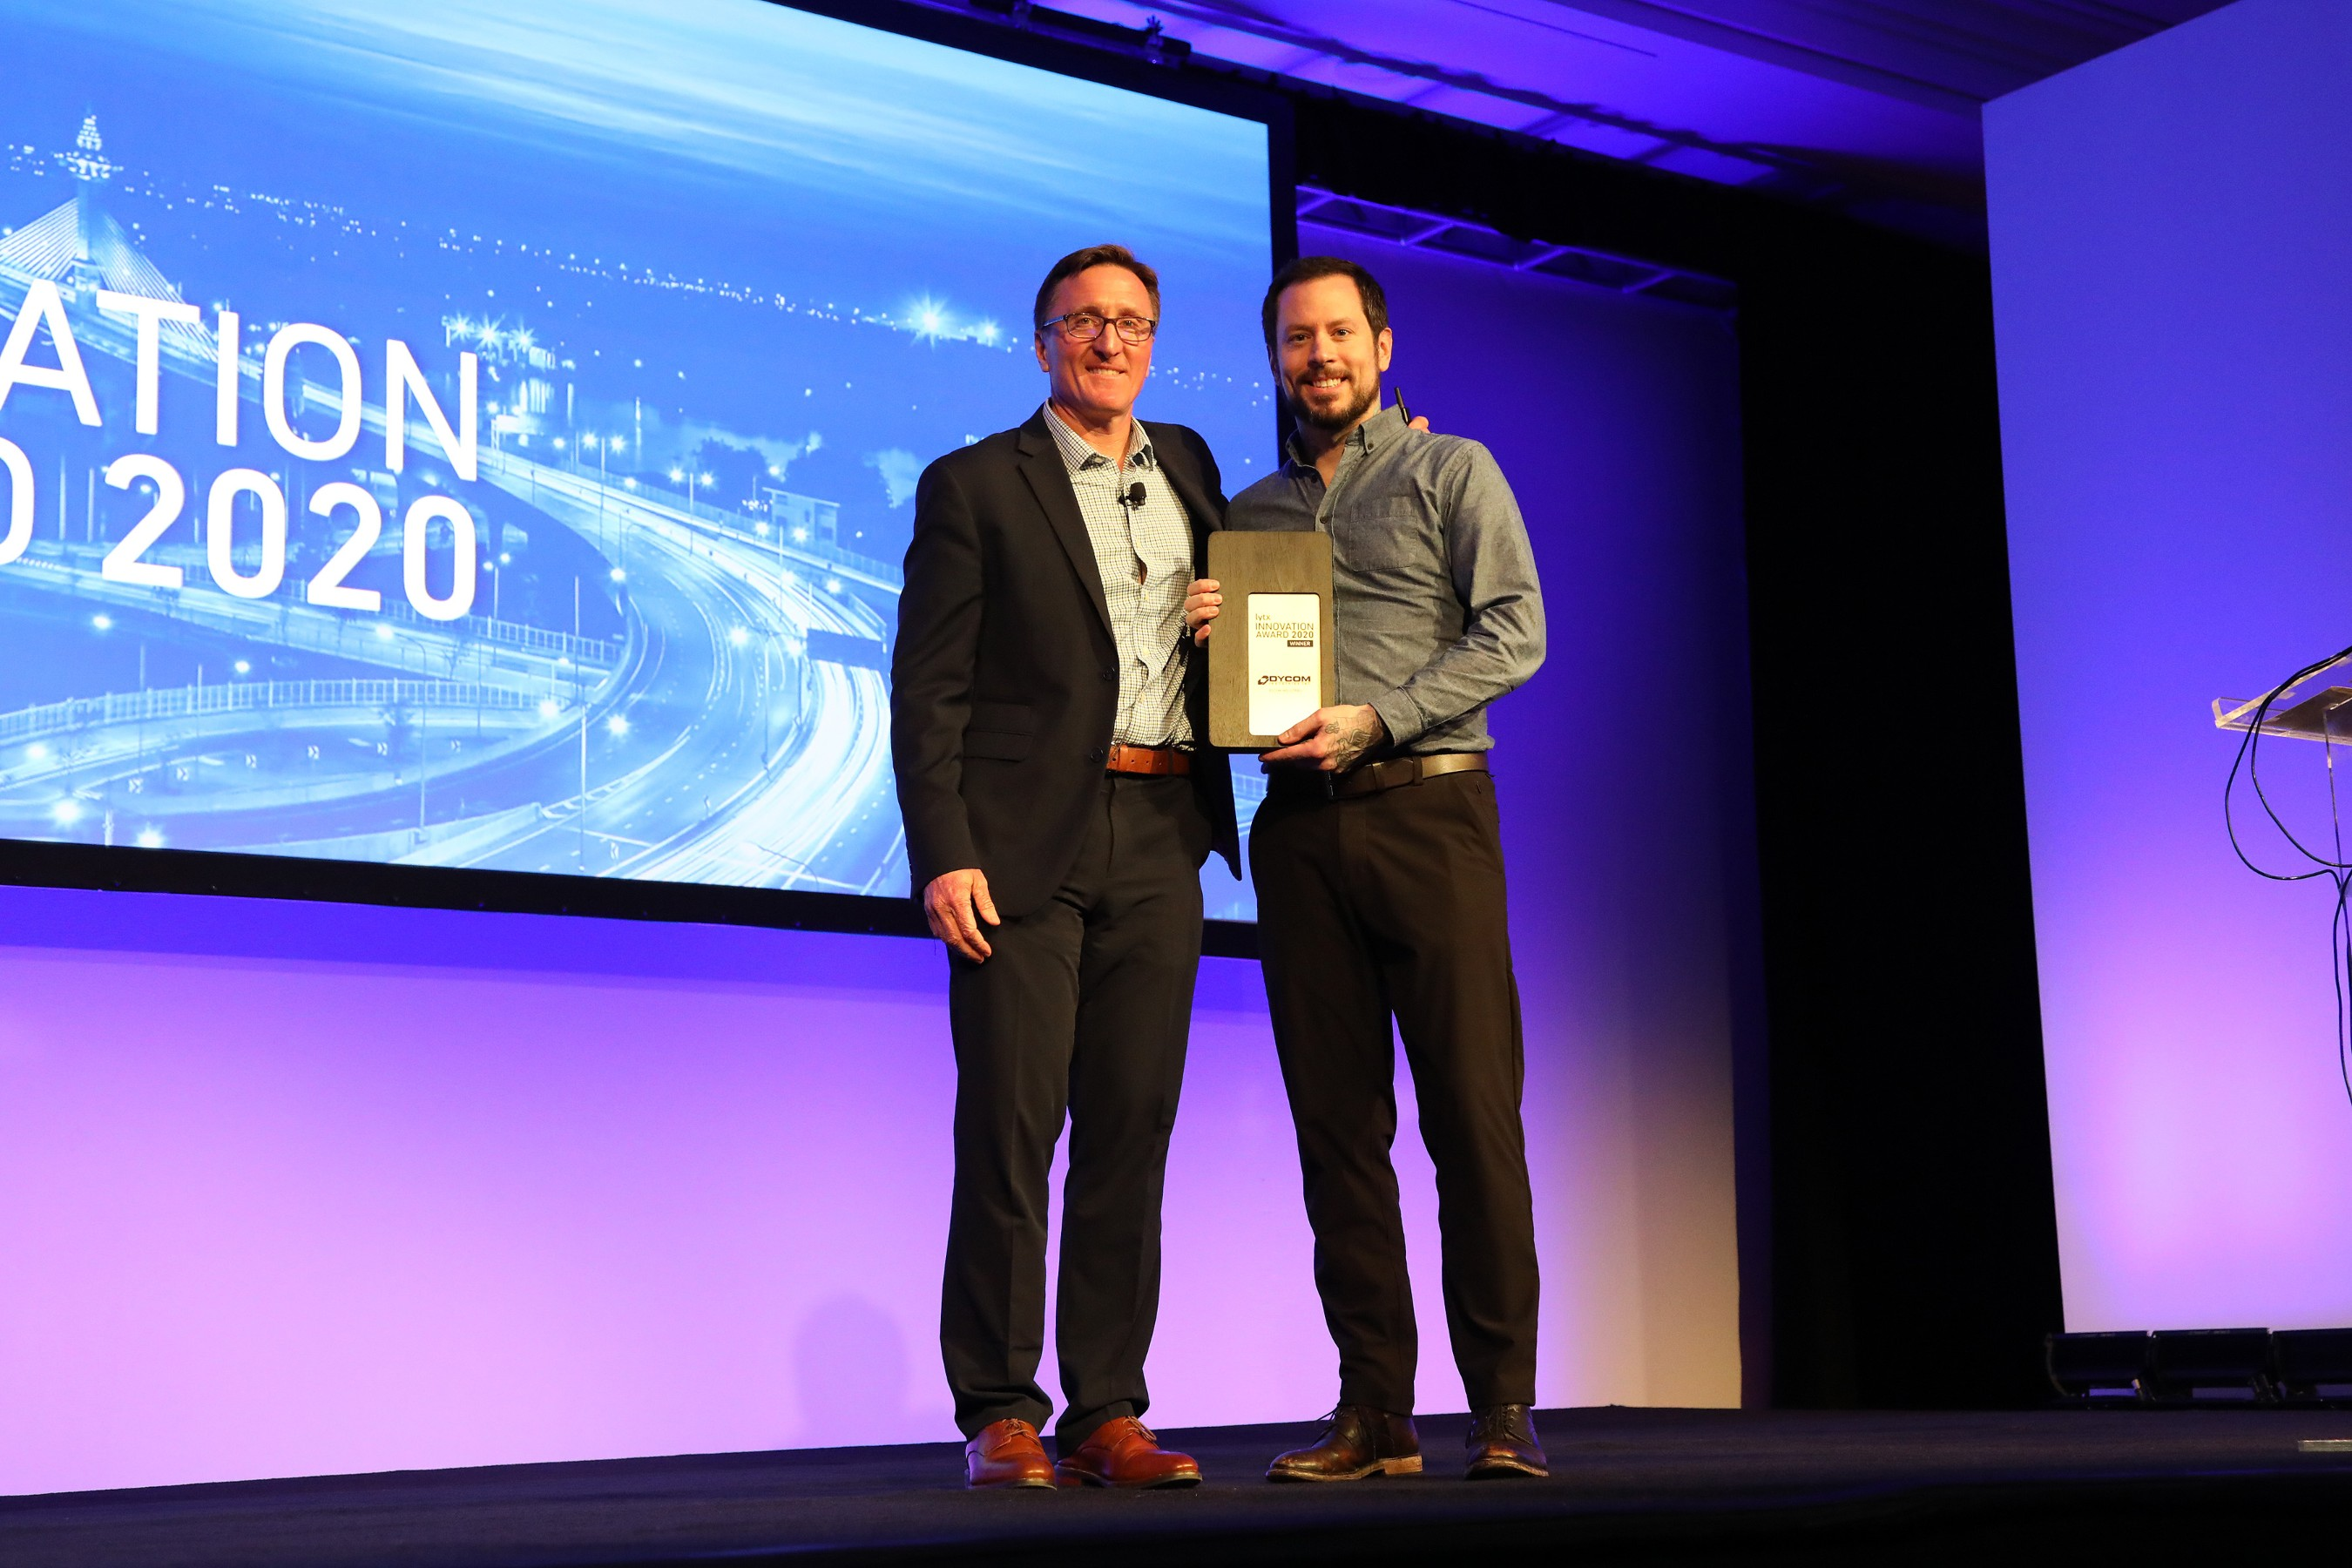 Matt Lovato, Senior Manager, Safety, Dycom Industries, Inc. accepts Lytx inaugural 2020 Lytx Innovation Award from David Riordan, Lytx EVP and Chief Client Officer, at Lytx's User Group Conference. Dycom is a co-winner of the award, with MV Transportation